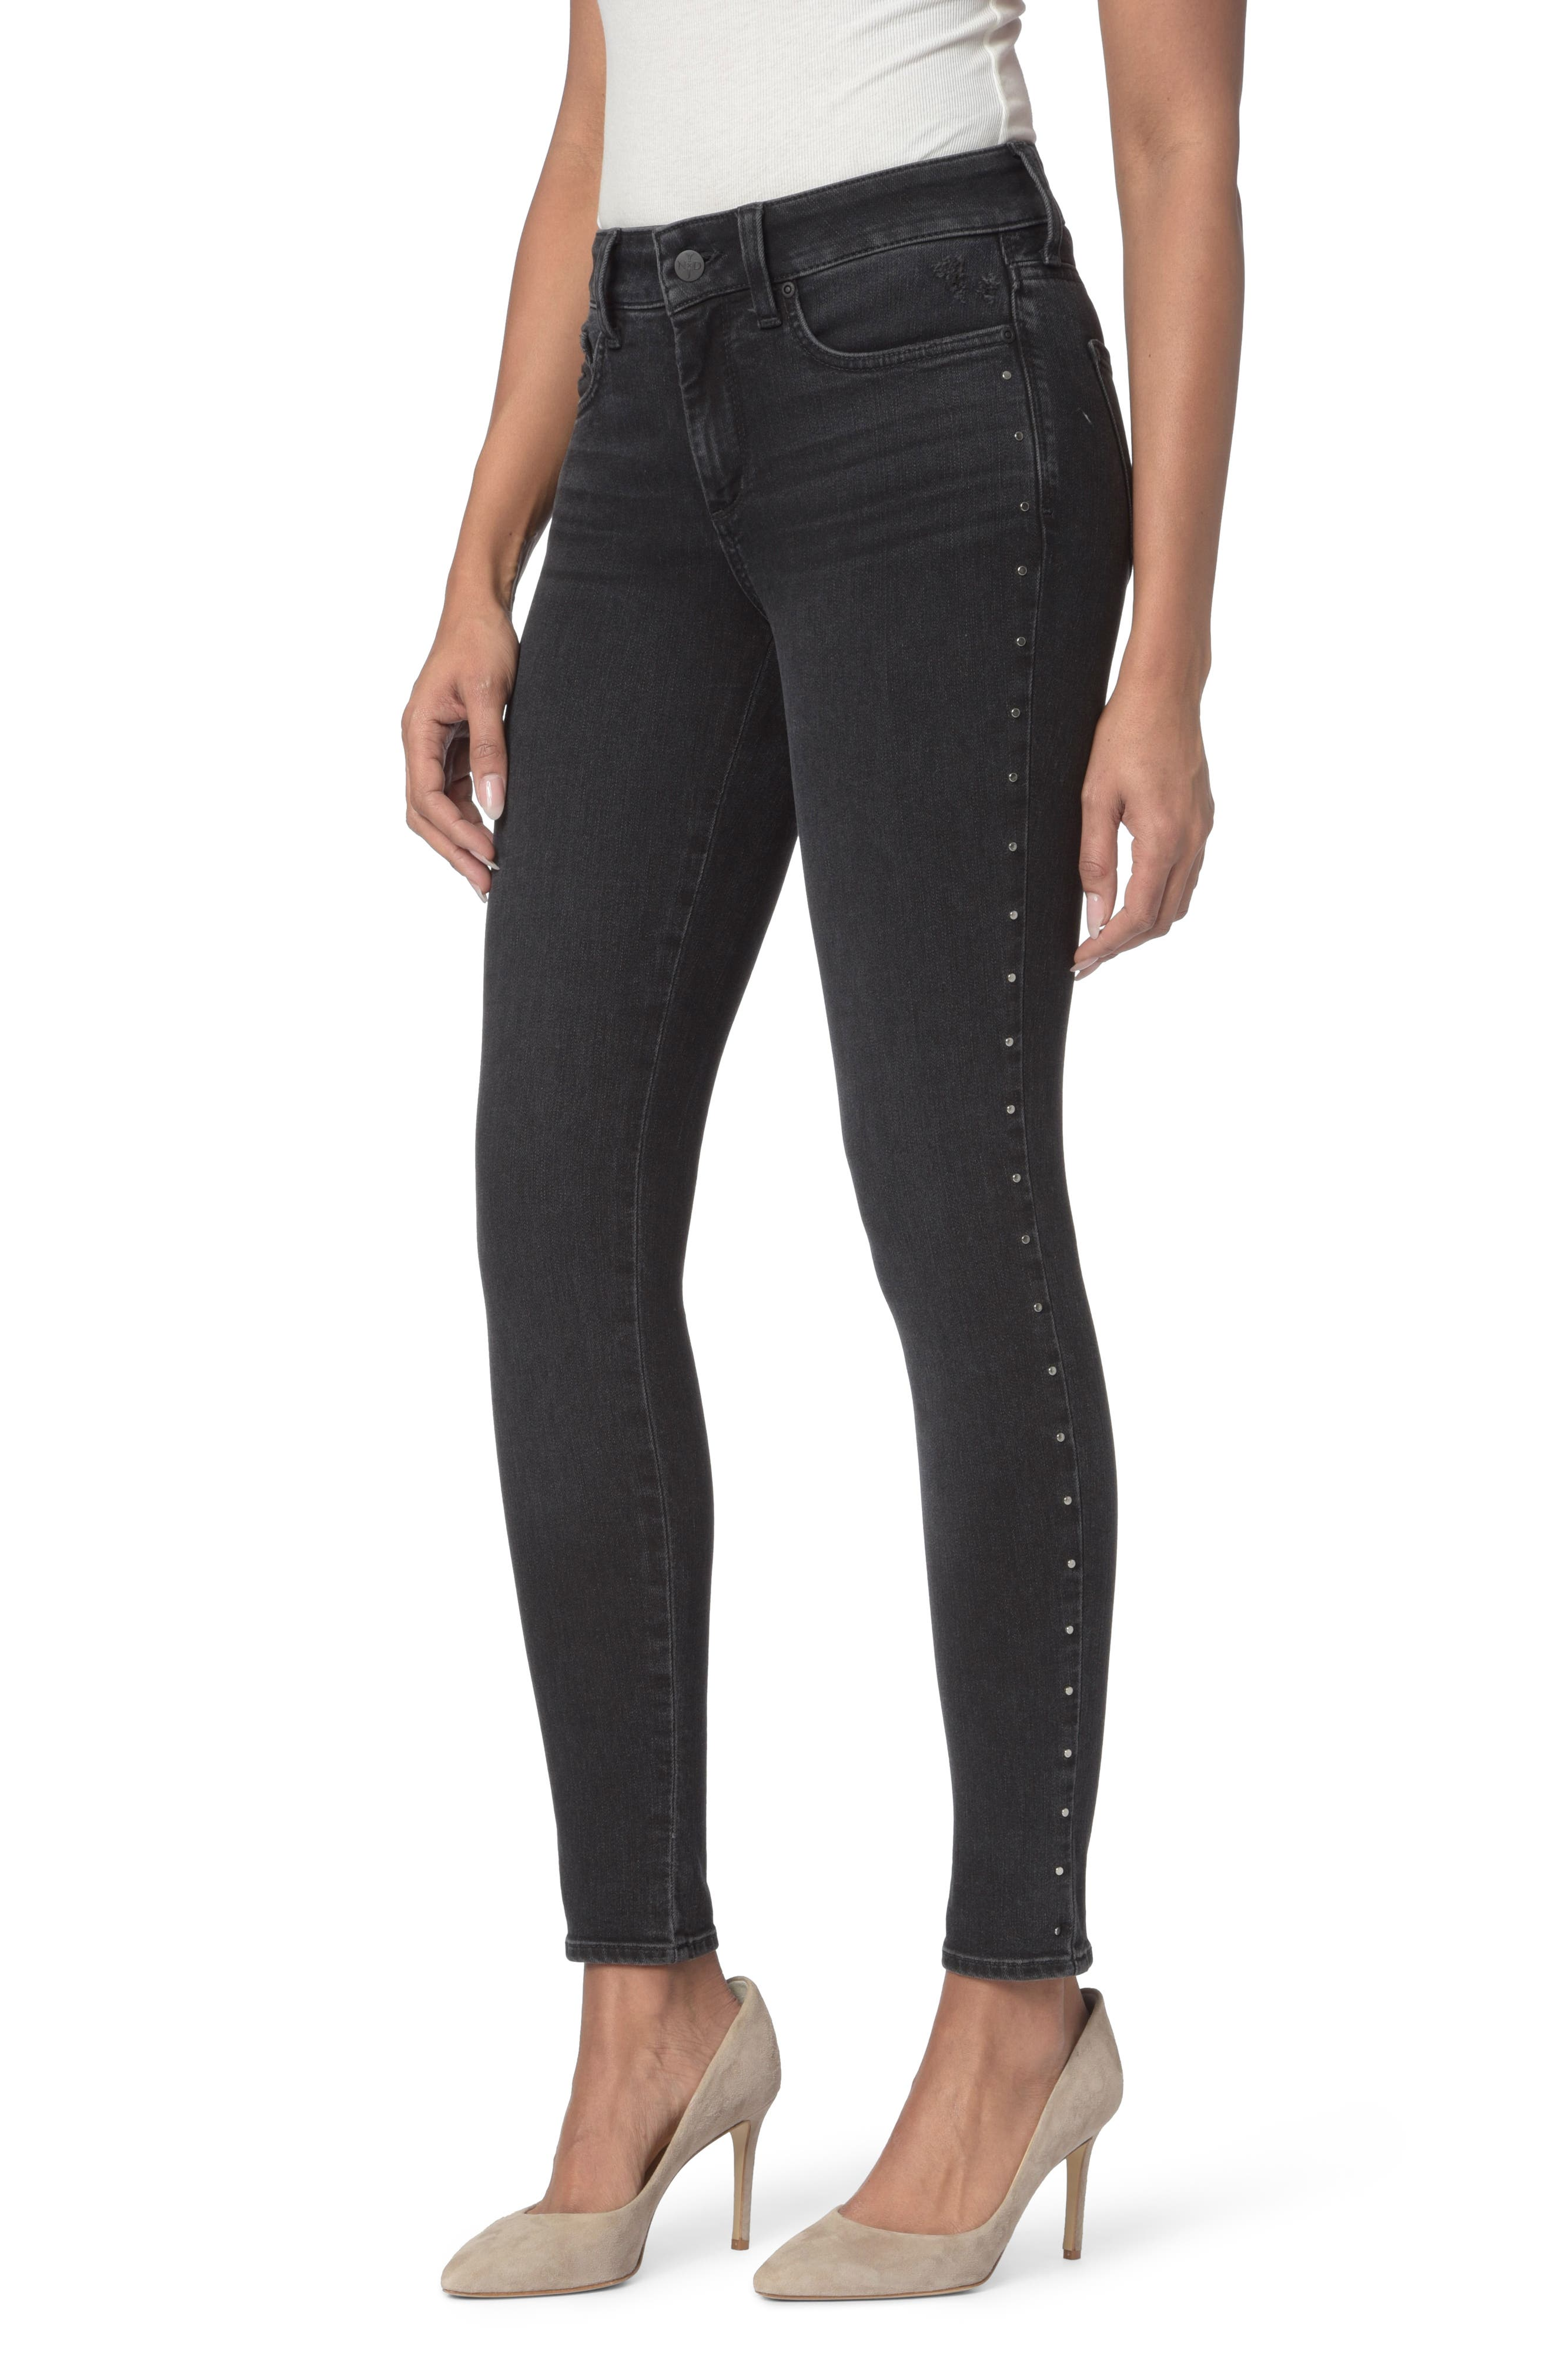 Ami Embellished Stretch Skinny Jeans,                             Main thumbnail 1, color,                             001